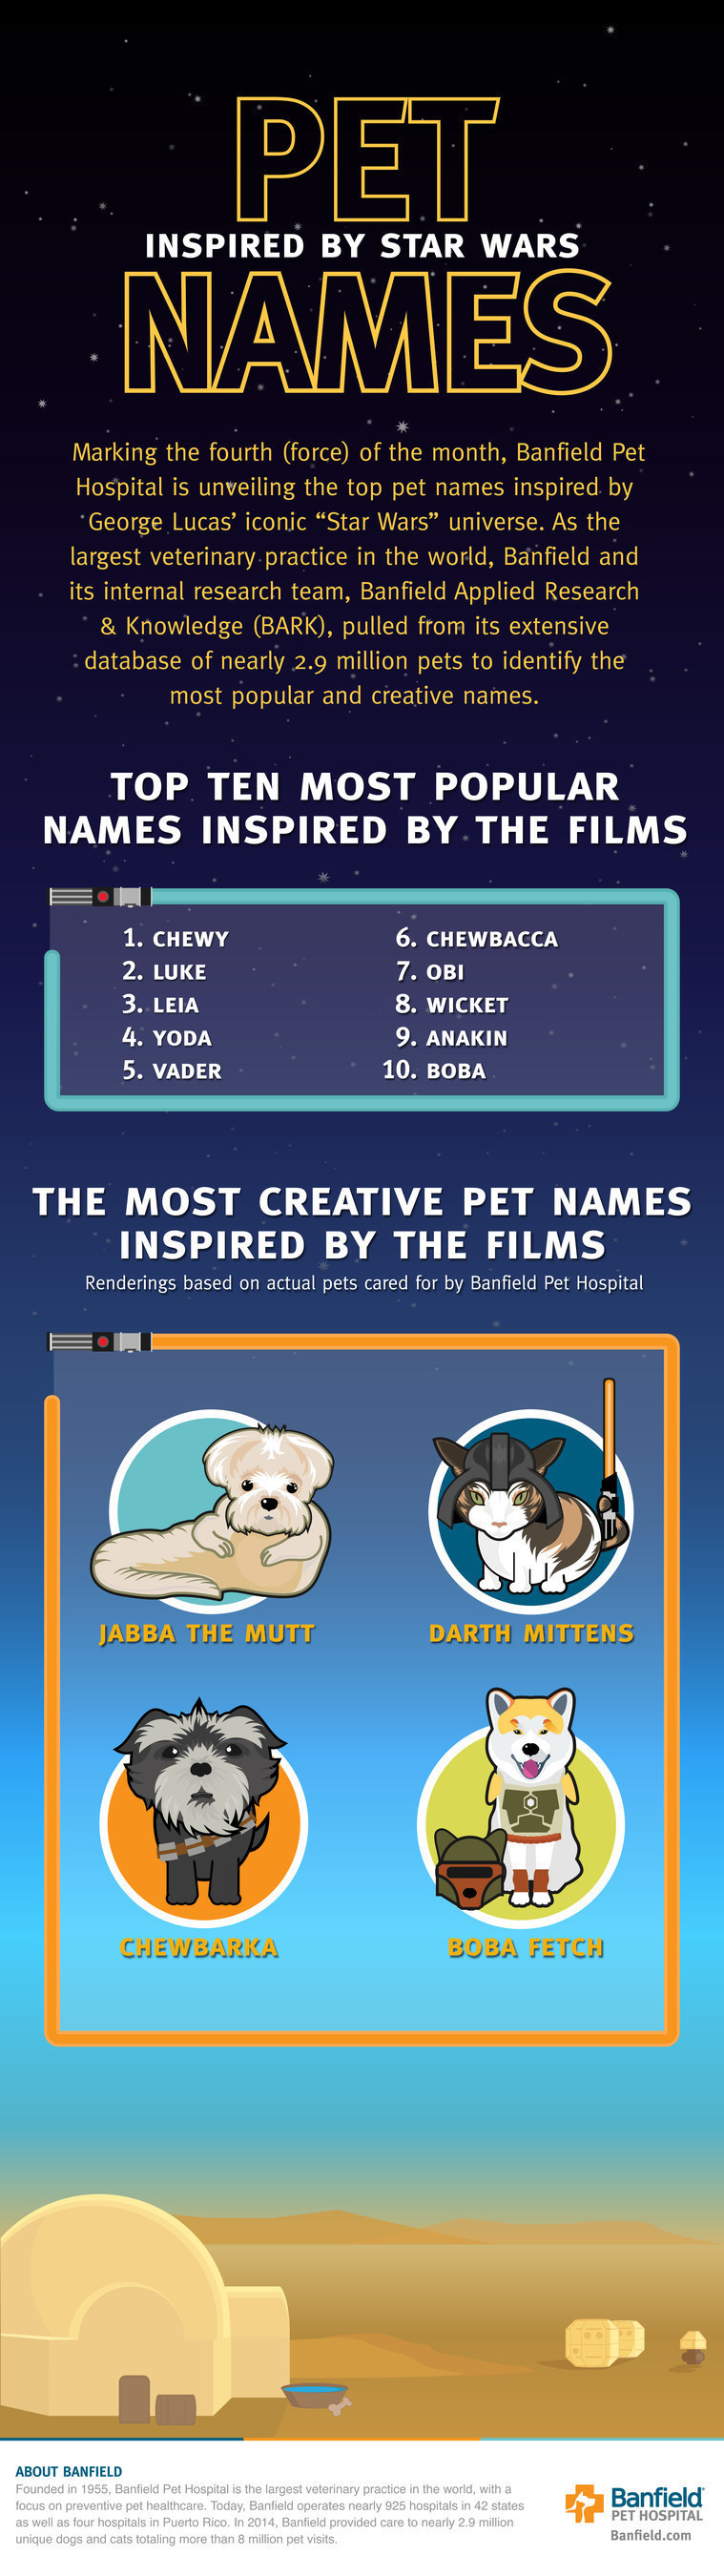 May The Fur Be With You: Banfield Pet Hospital Unveils Most Clever